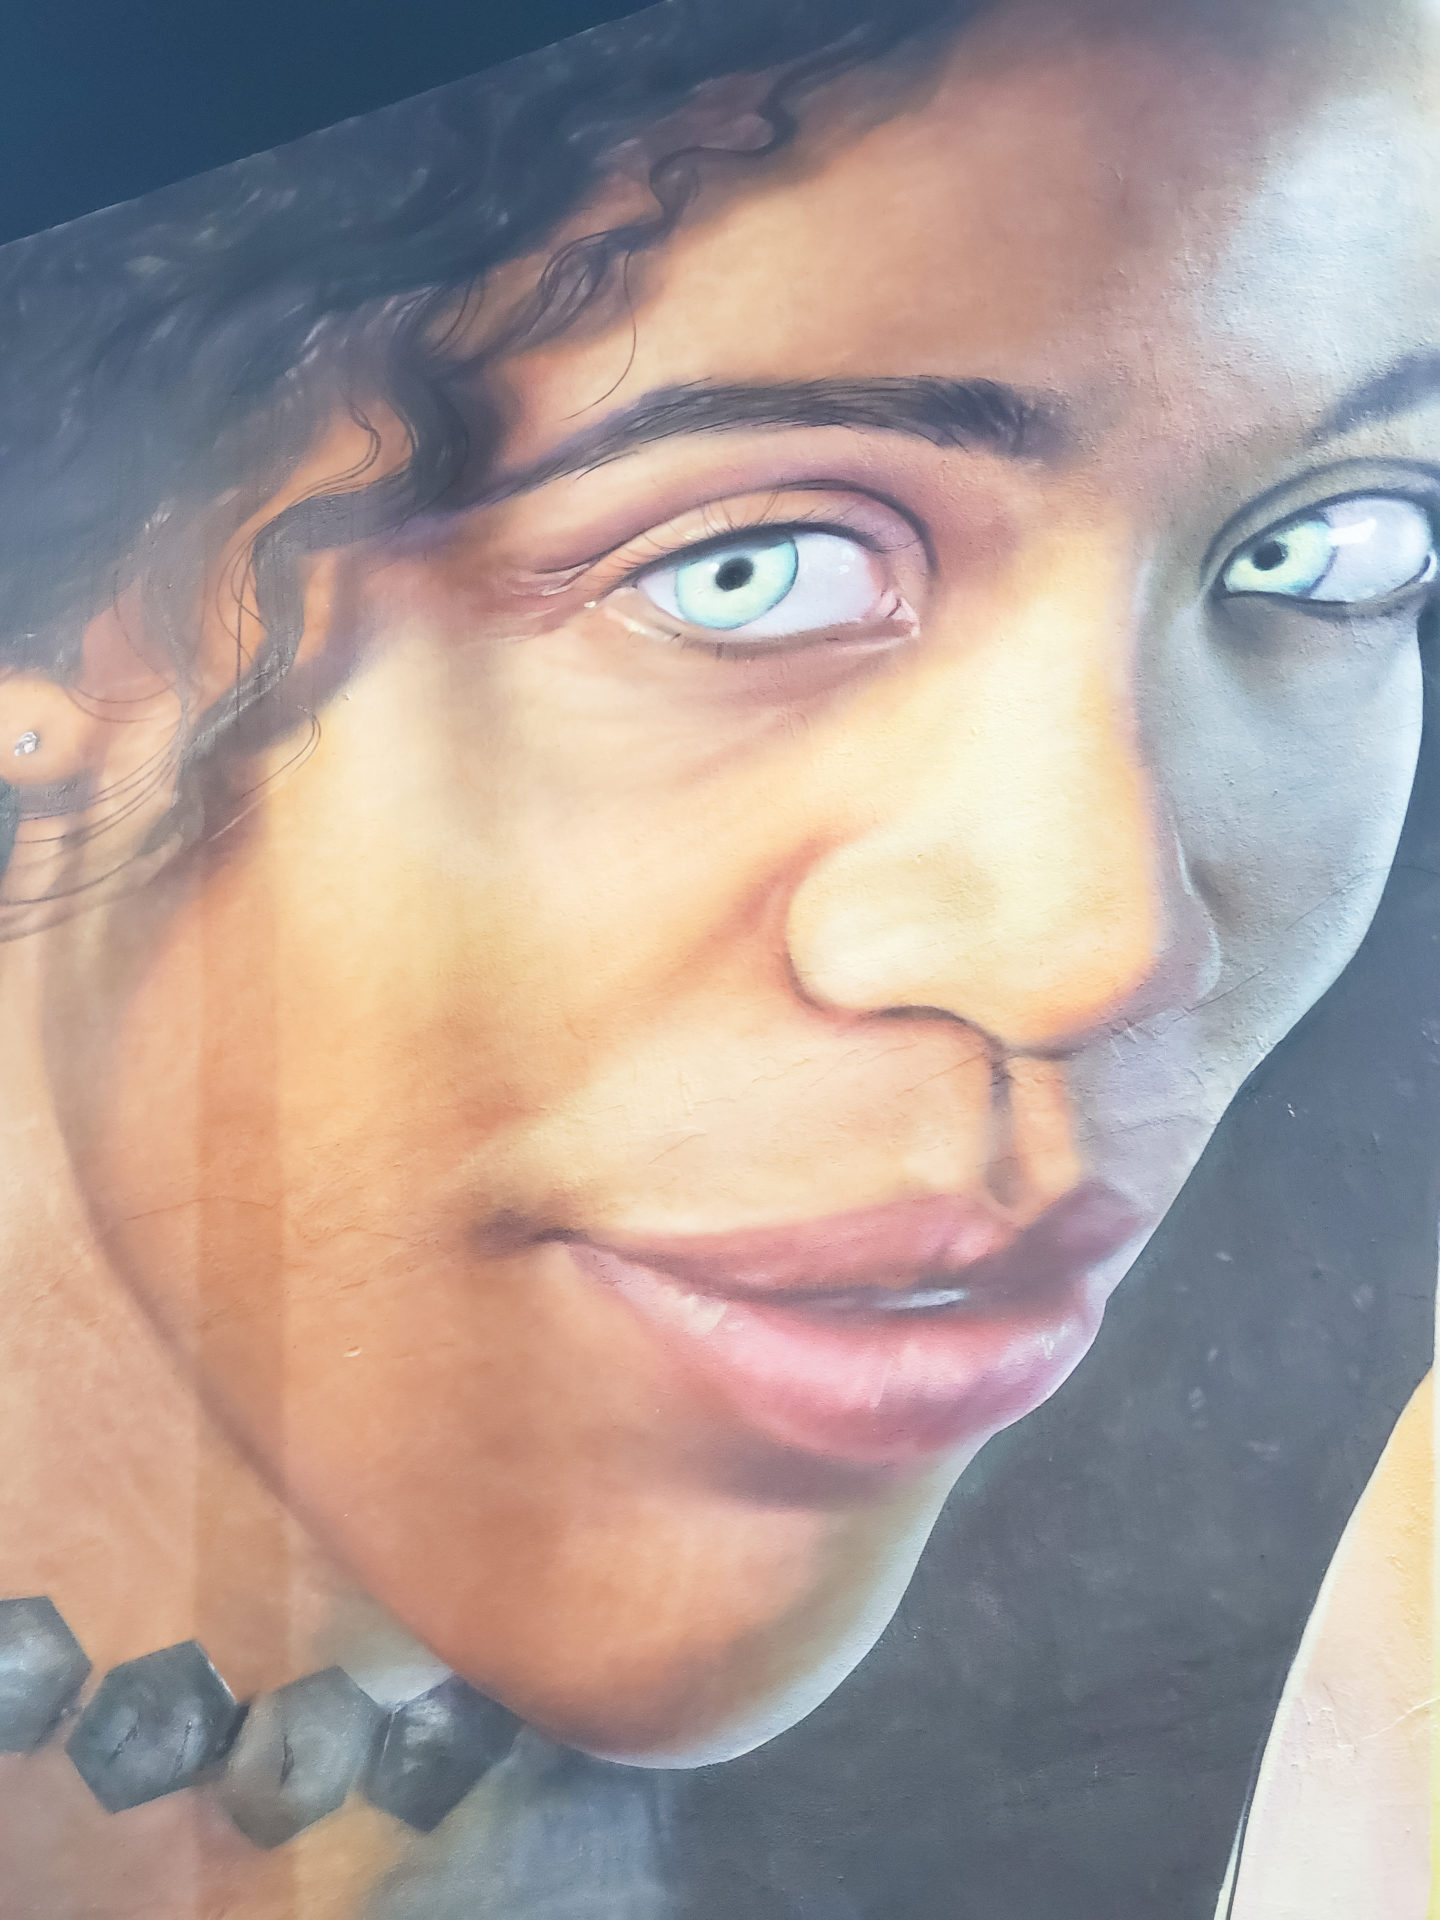 Beautiful Black Woman painted in a mural.